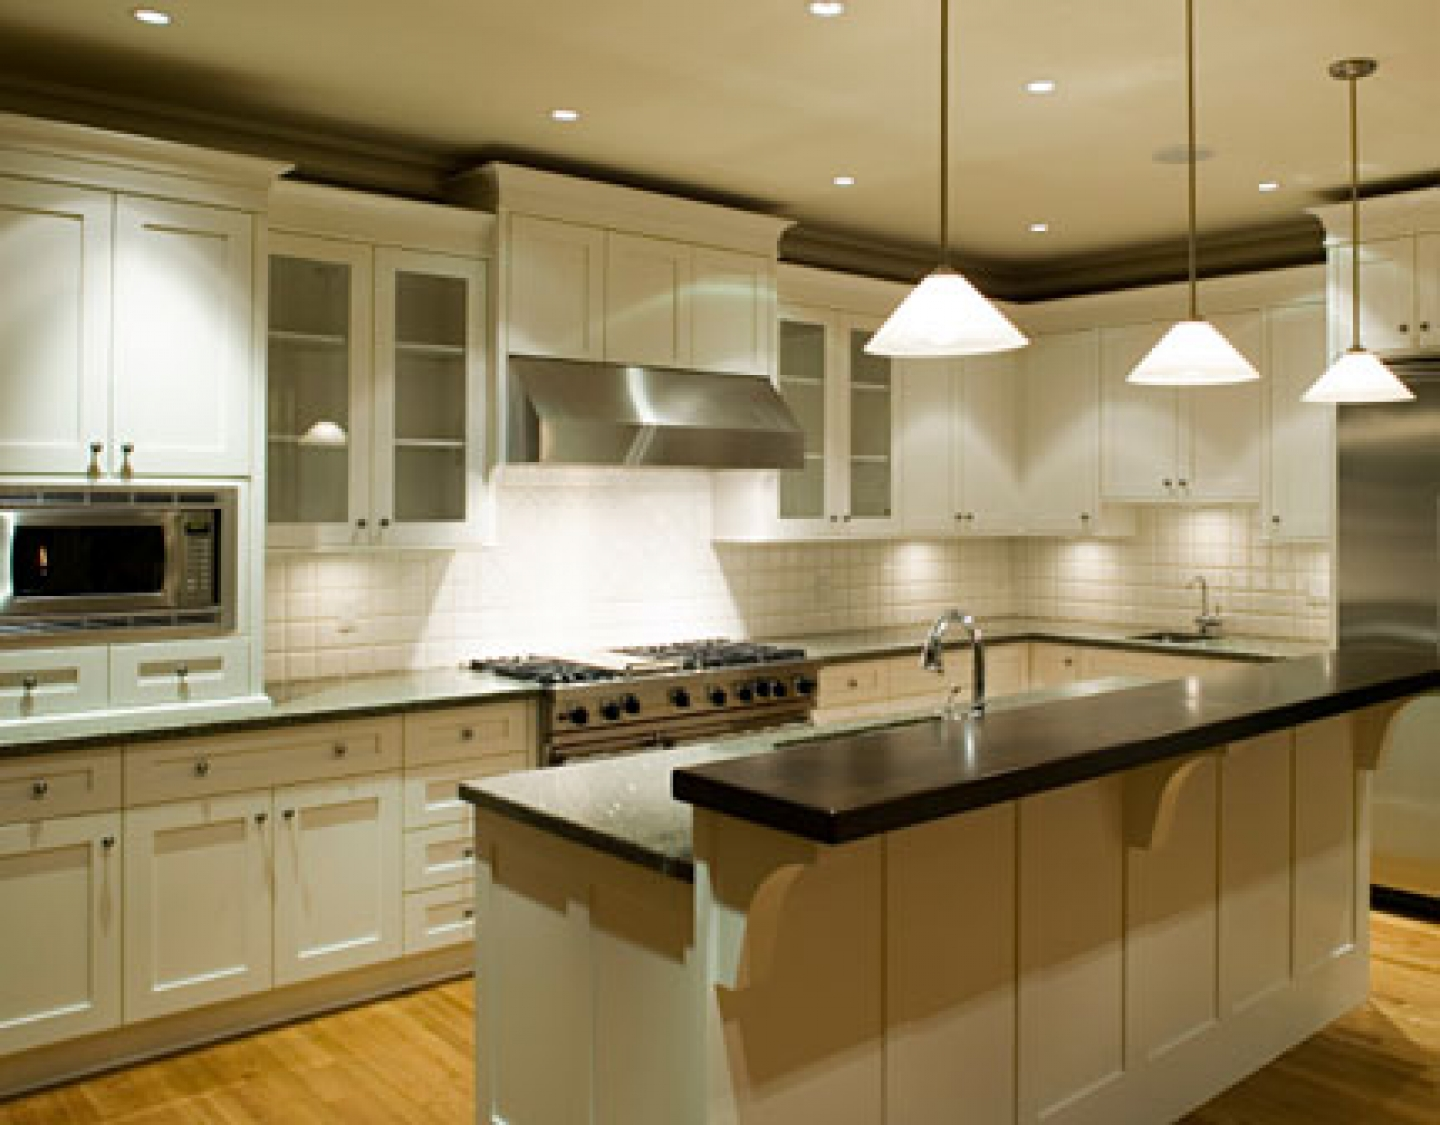 Magnificent White Kitchen Cabinets Design 1440 x 1125 · 660 kB · jpeg